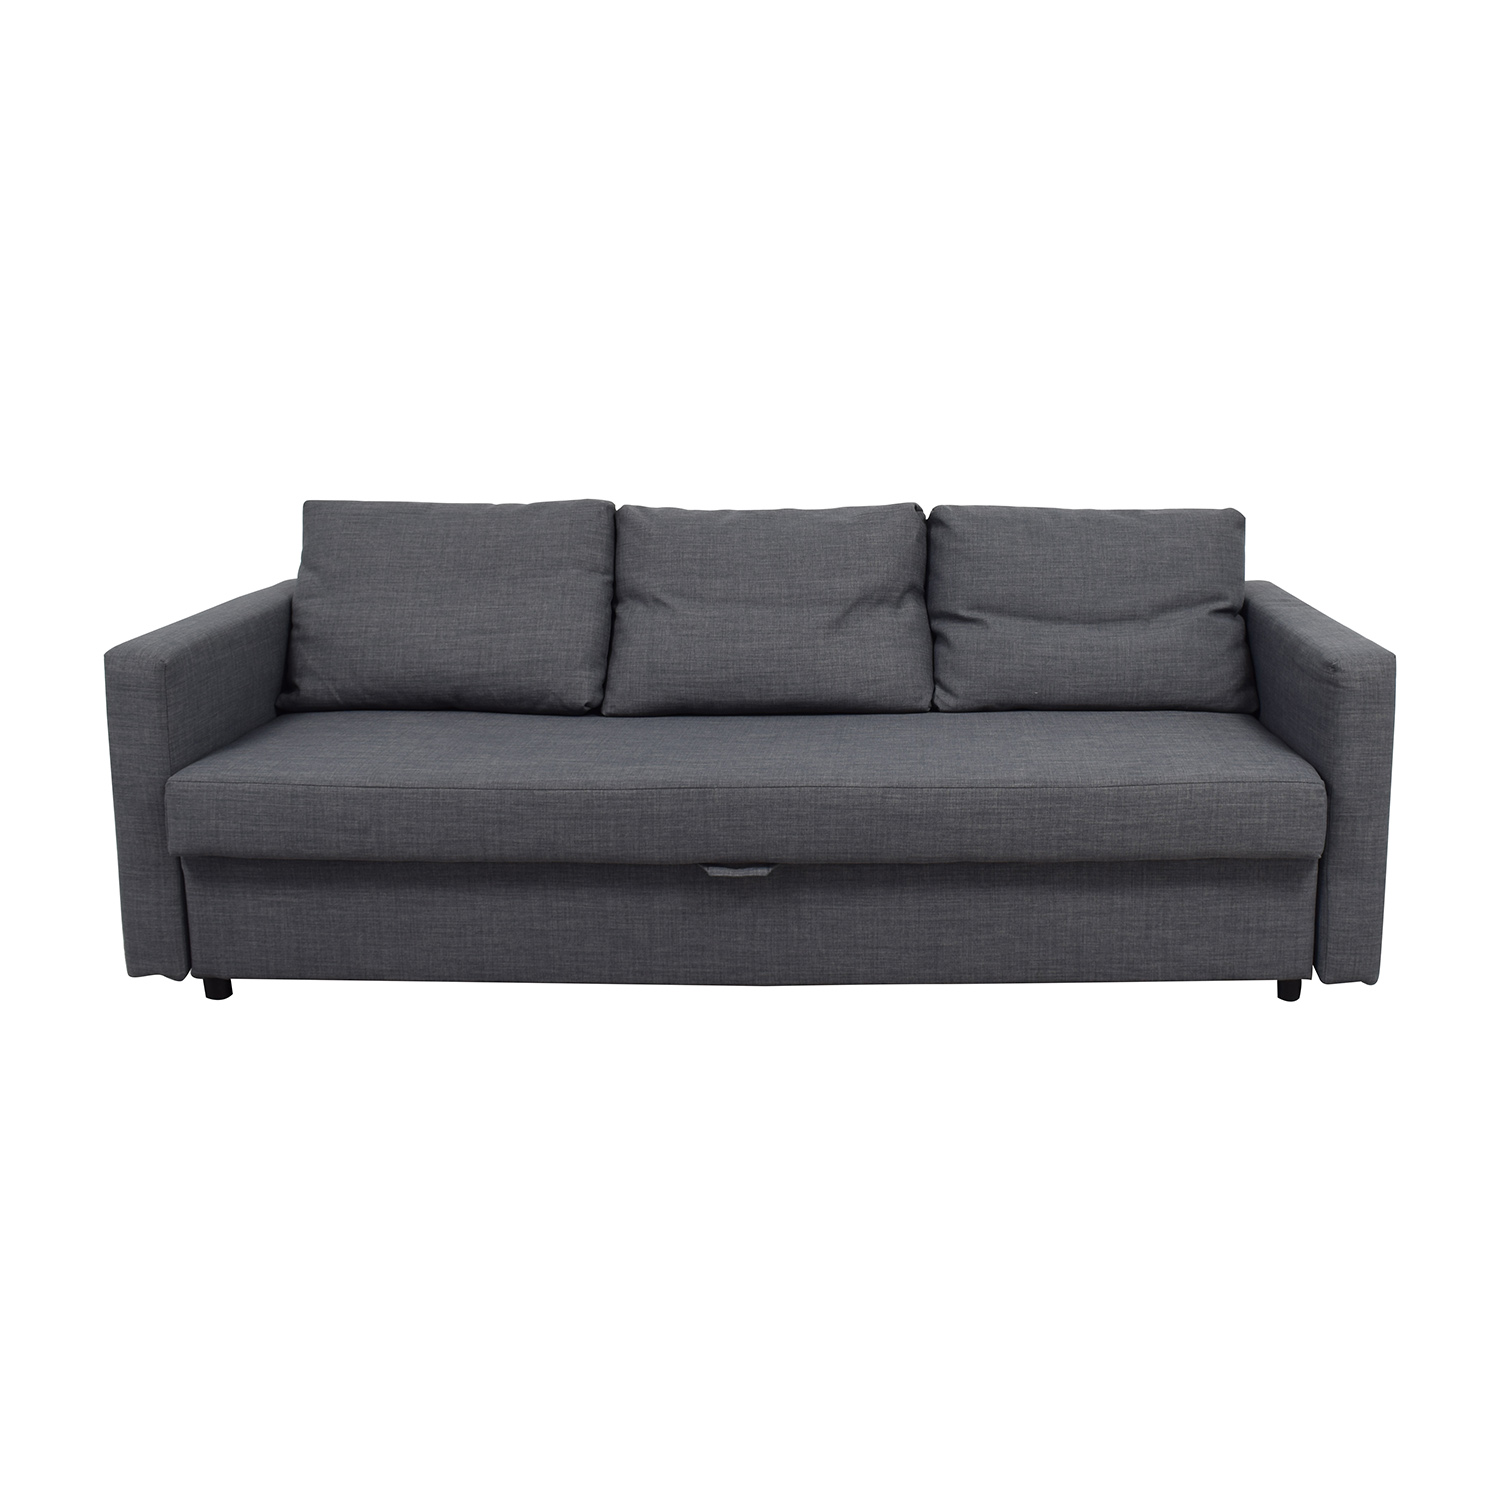 shop IKEA IKEA FRIHETEN Grey Sleeper sofa online